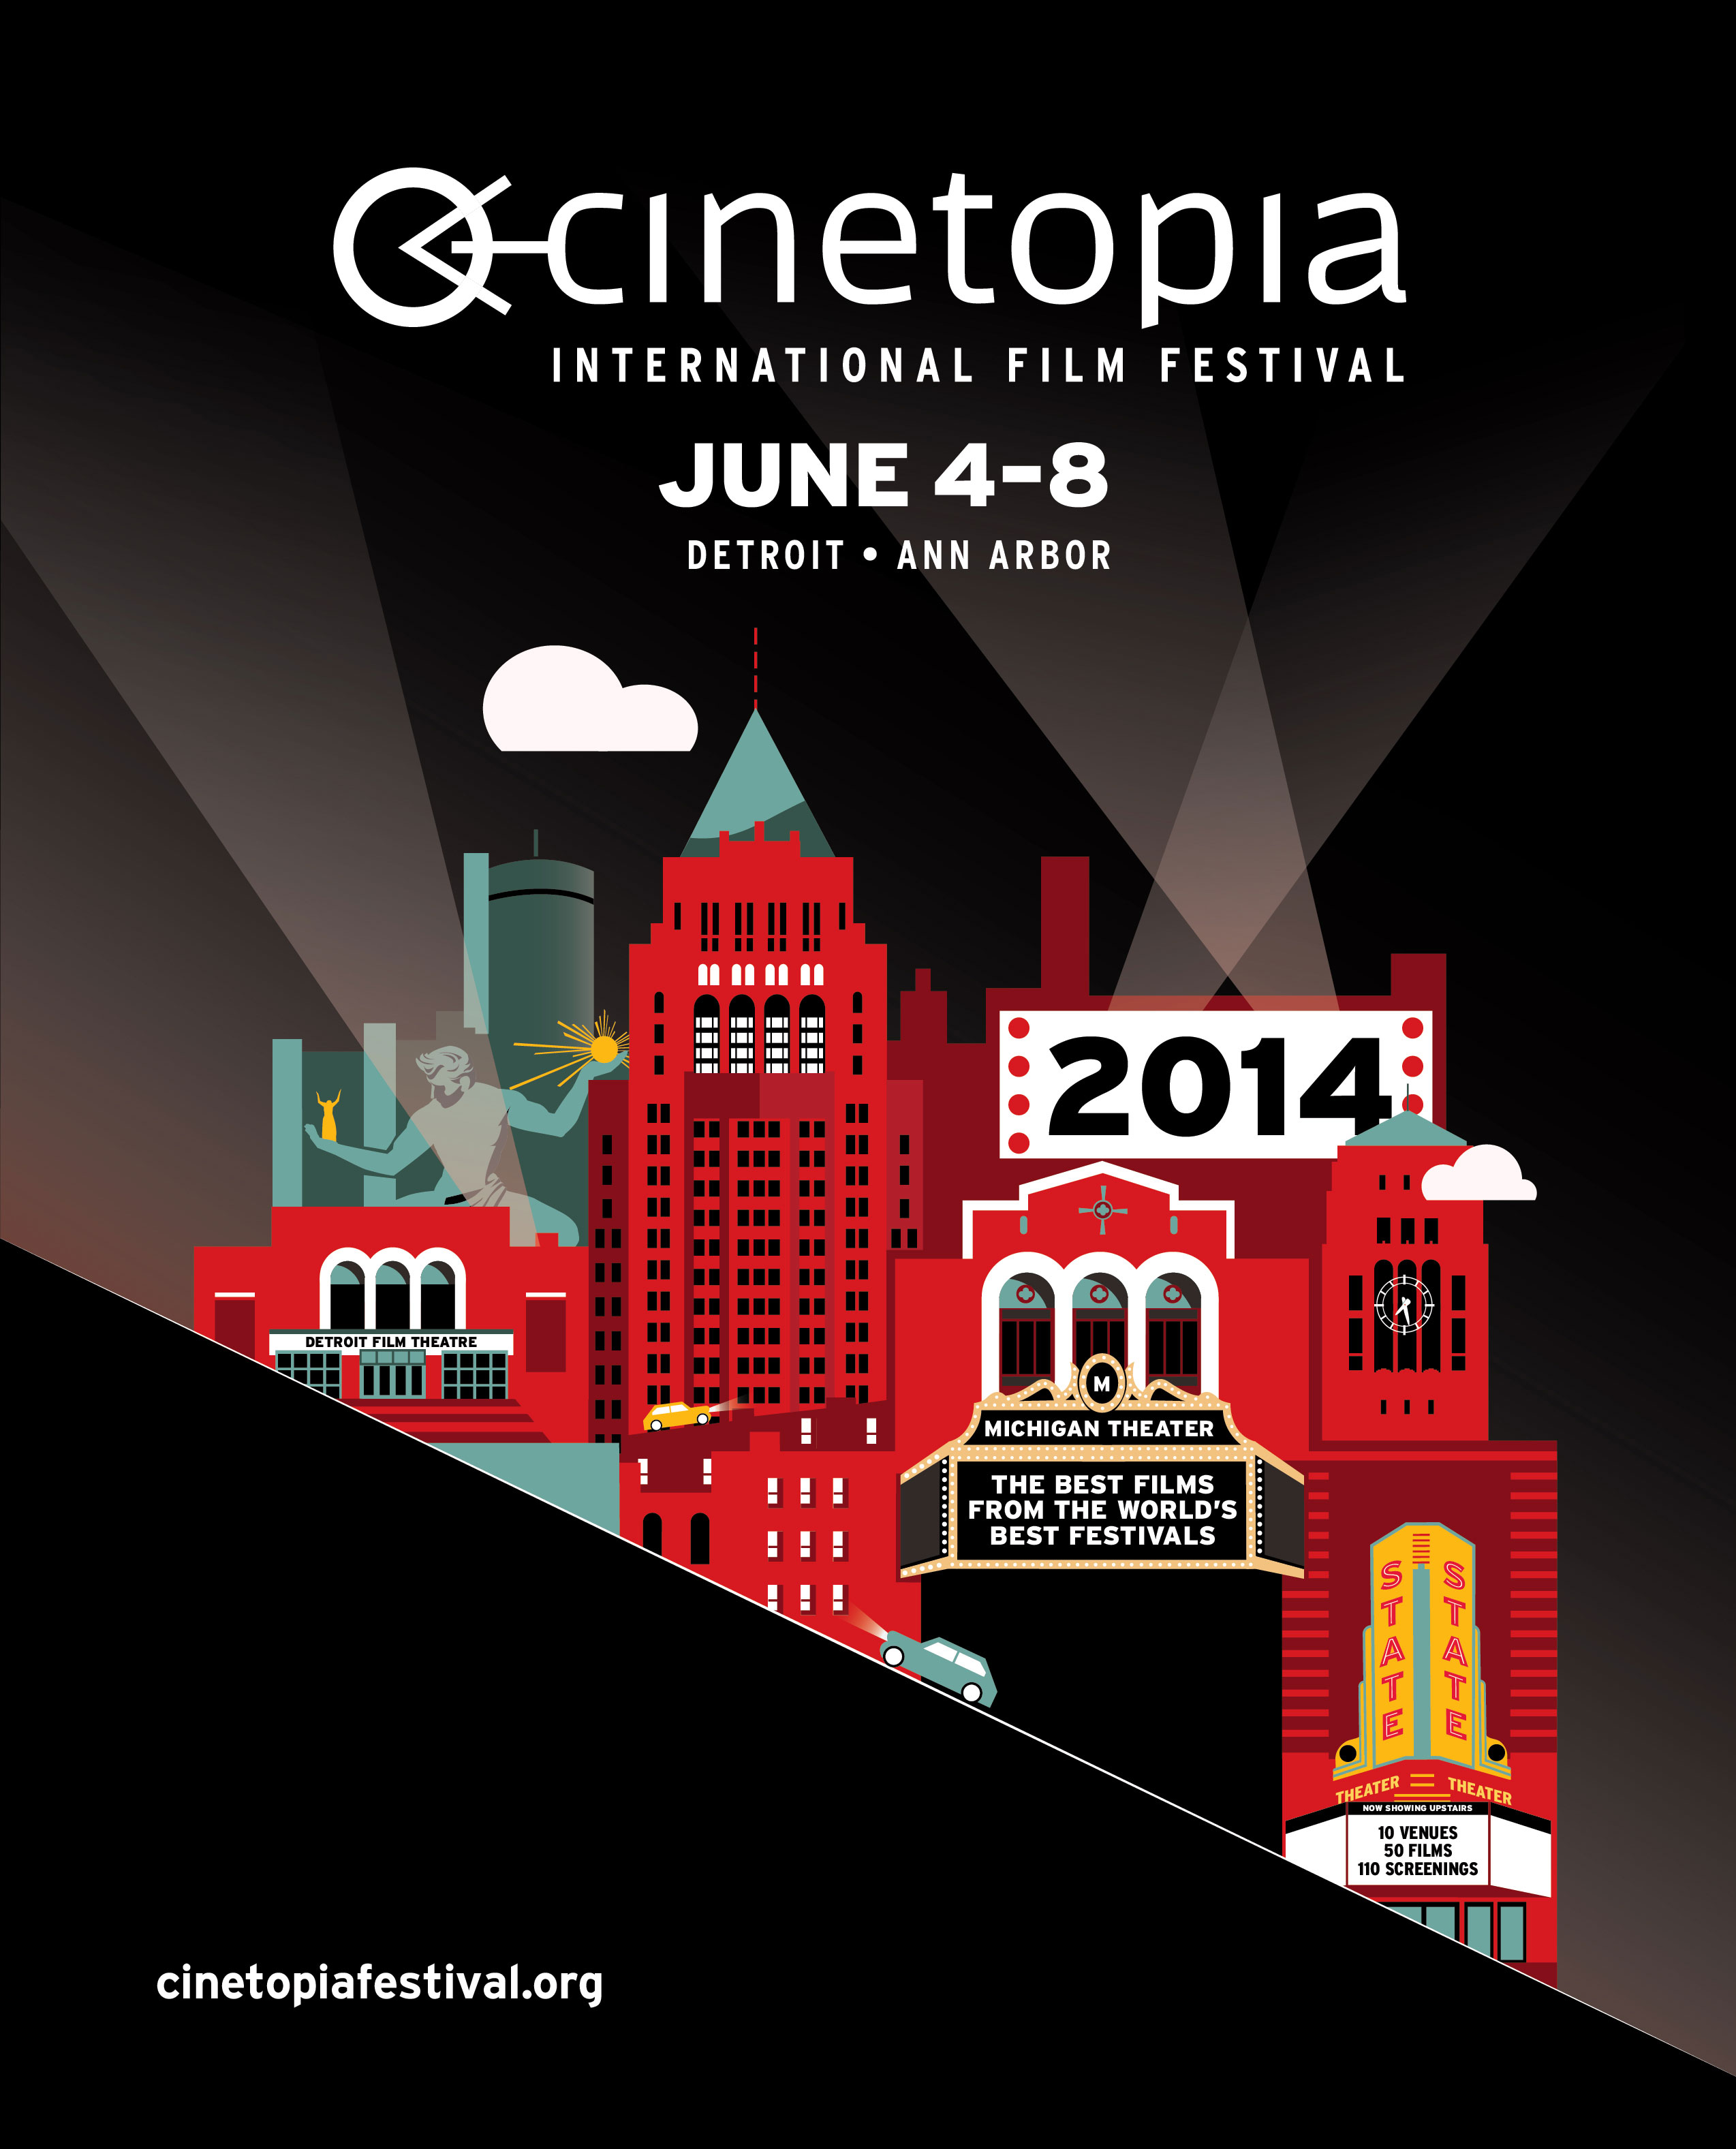 CINETOPIA FESTIVAL 2014: How To Have Fun June 4-8!